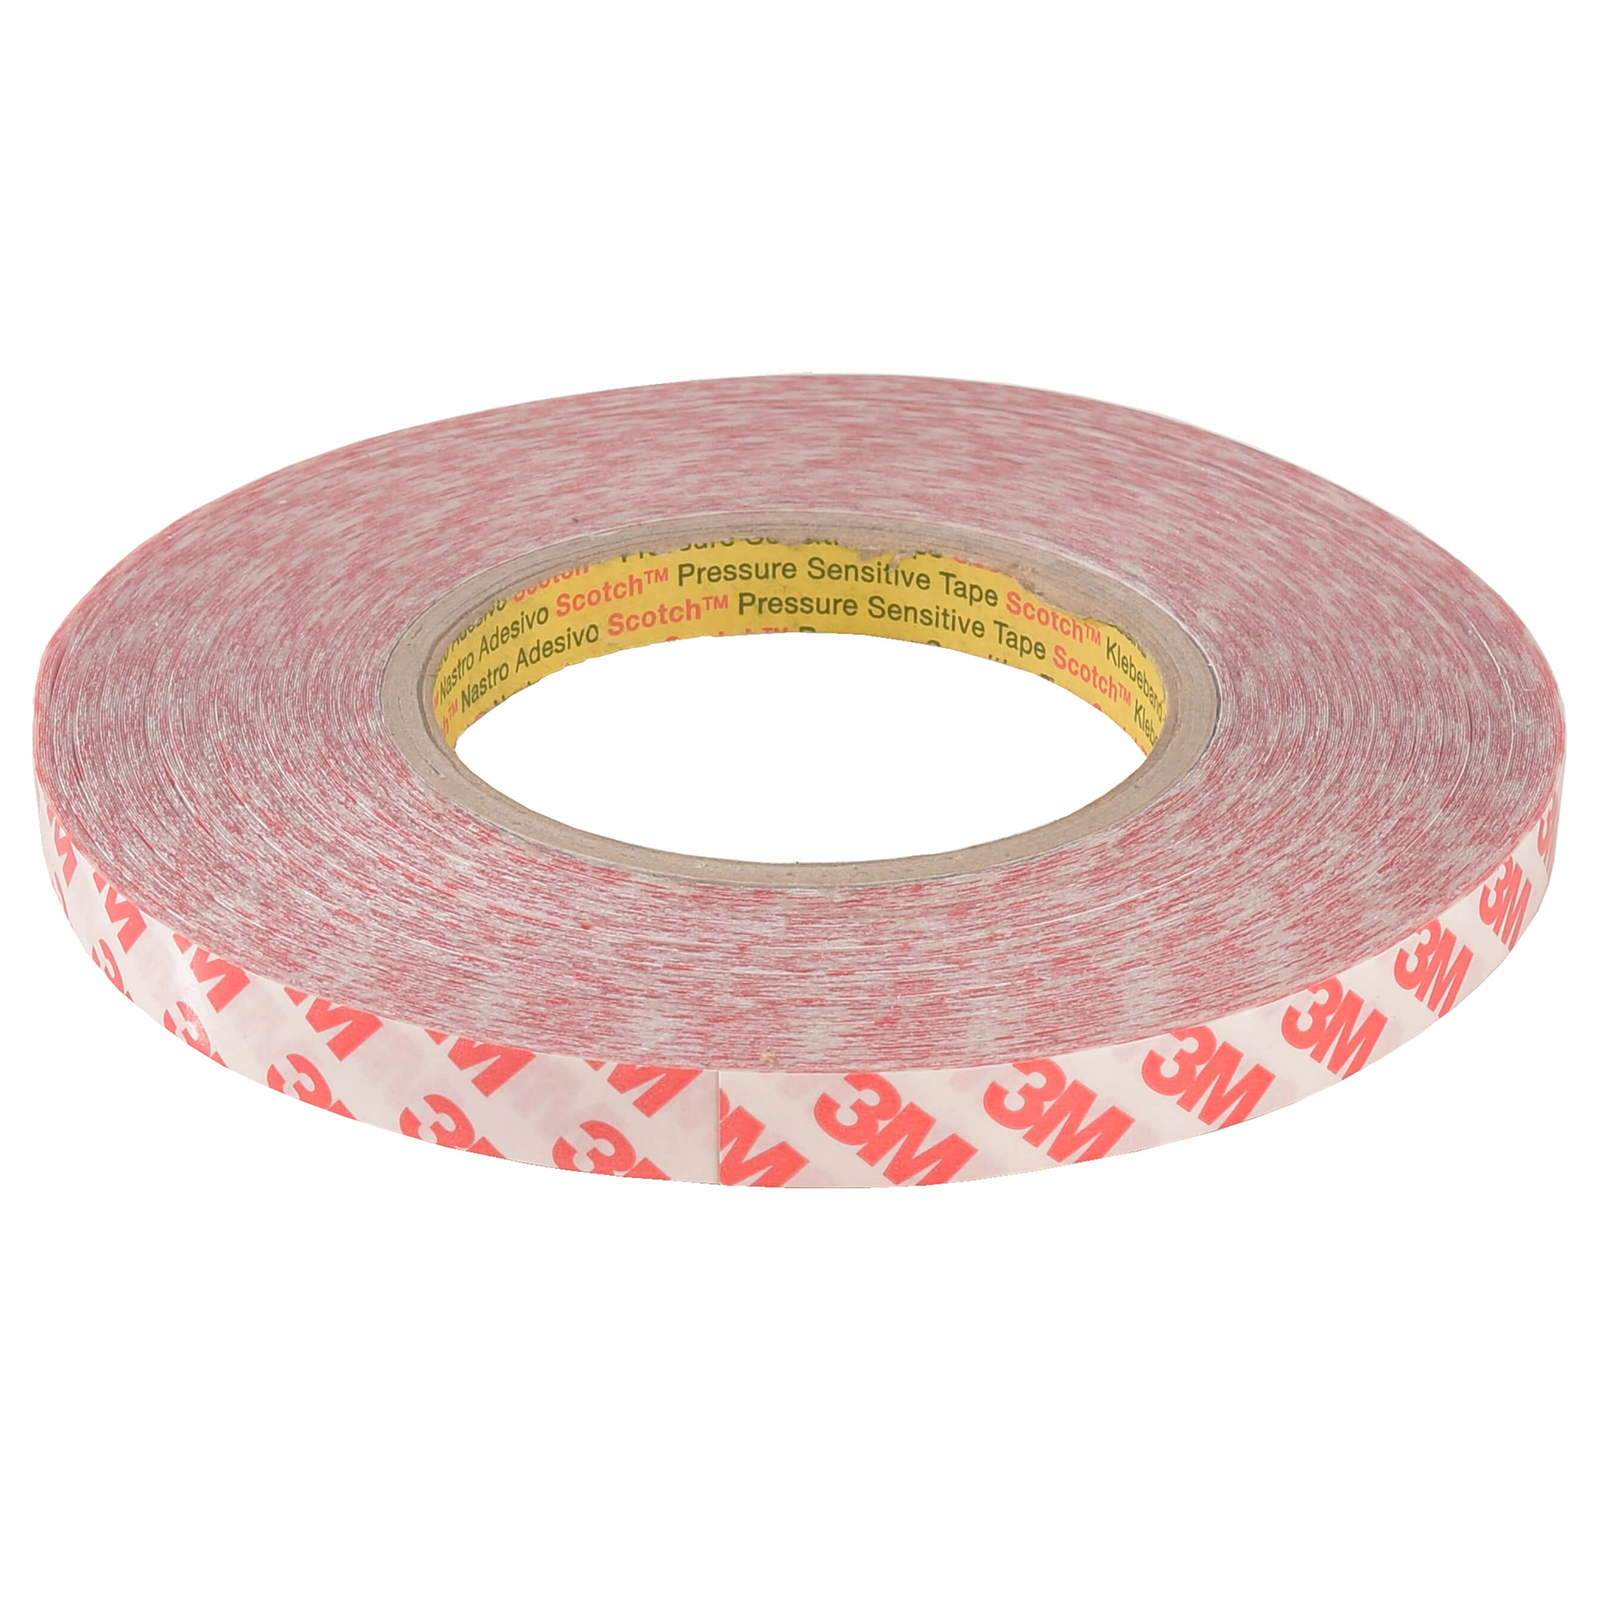 Roll the reel 3M adhesive tape, 8mm double sided tape 50 metres resistant profiles, LED